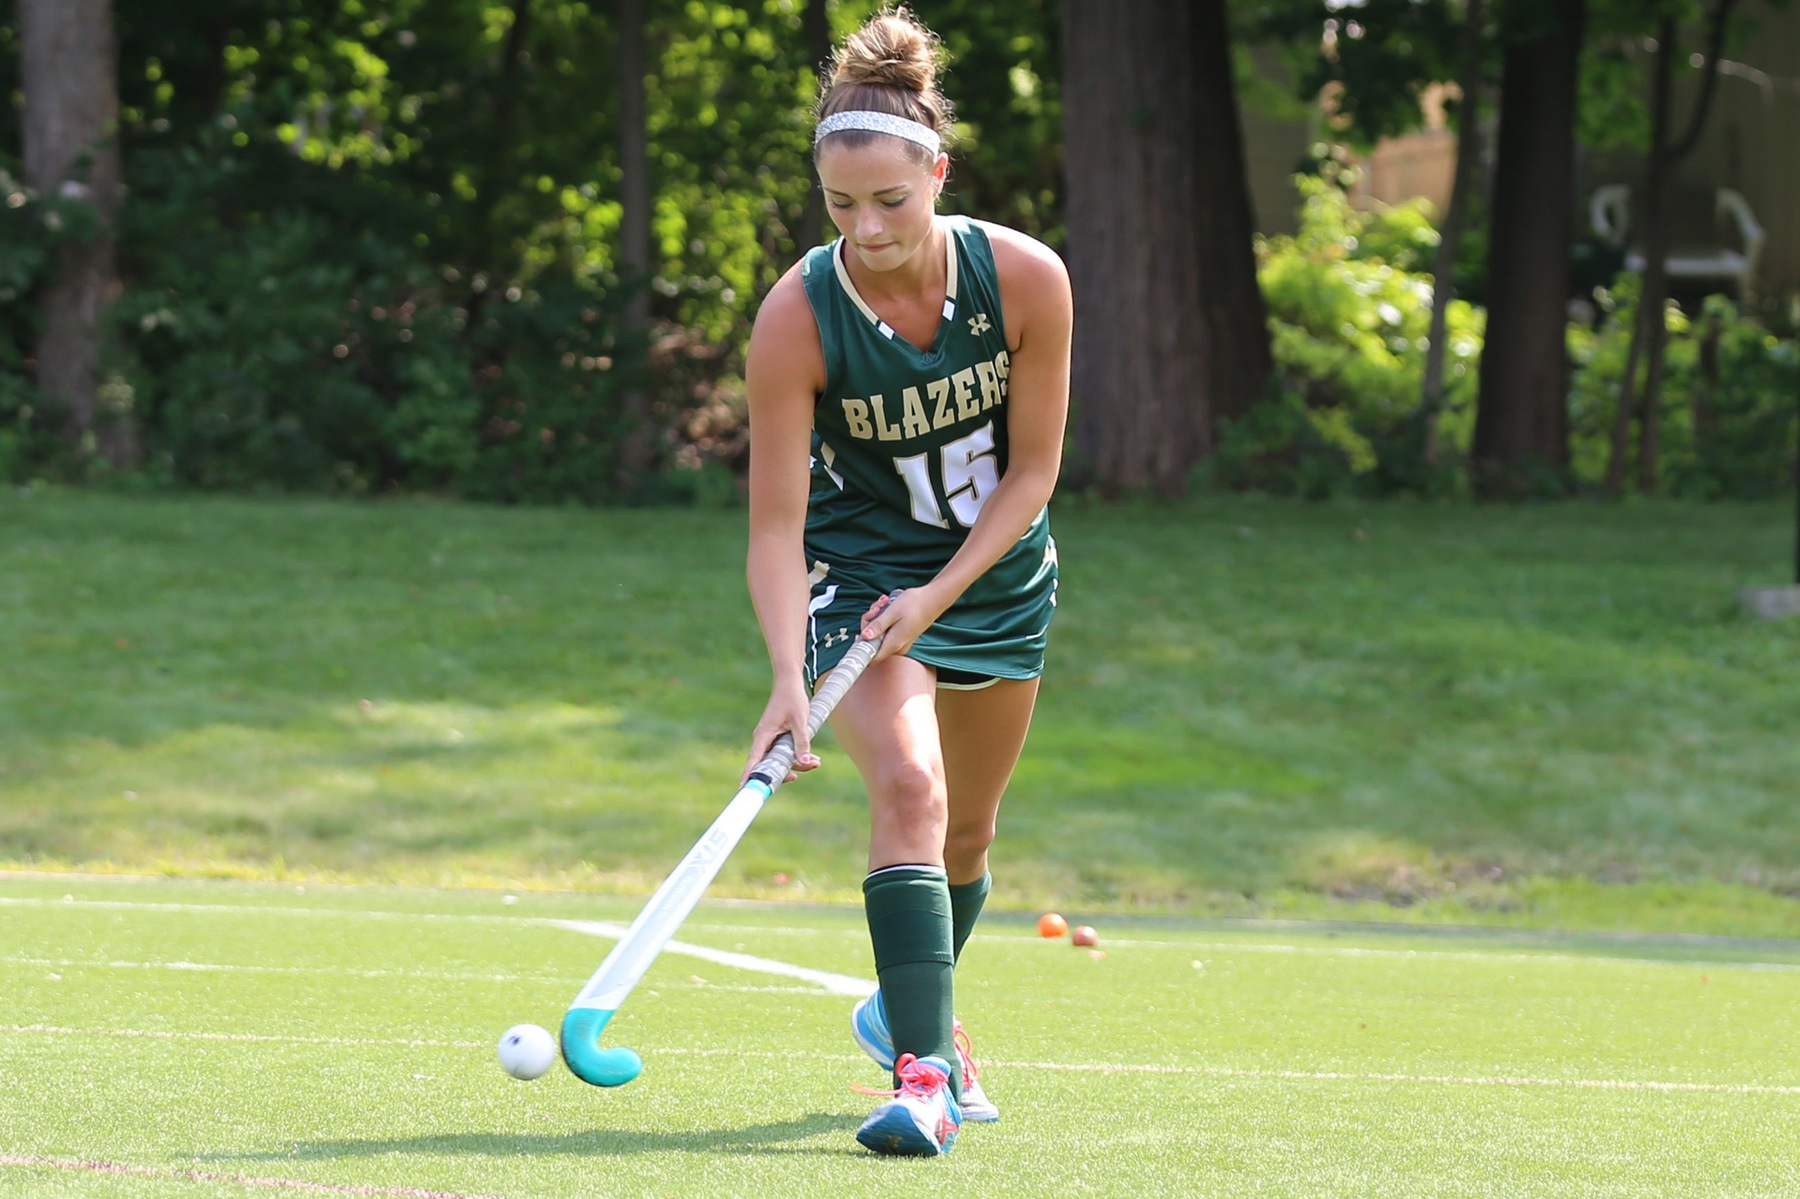 McGuire Tabbed As NFHCA Honorable Mention National Offensive Player Of The Week